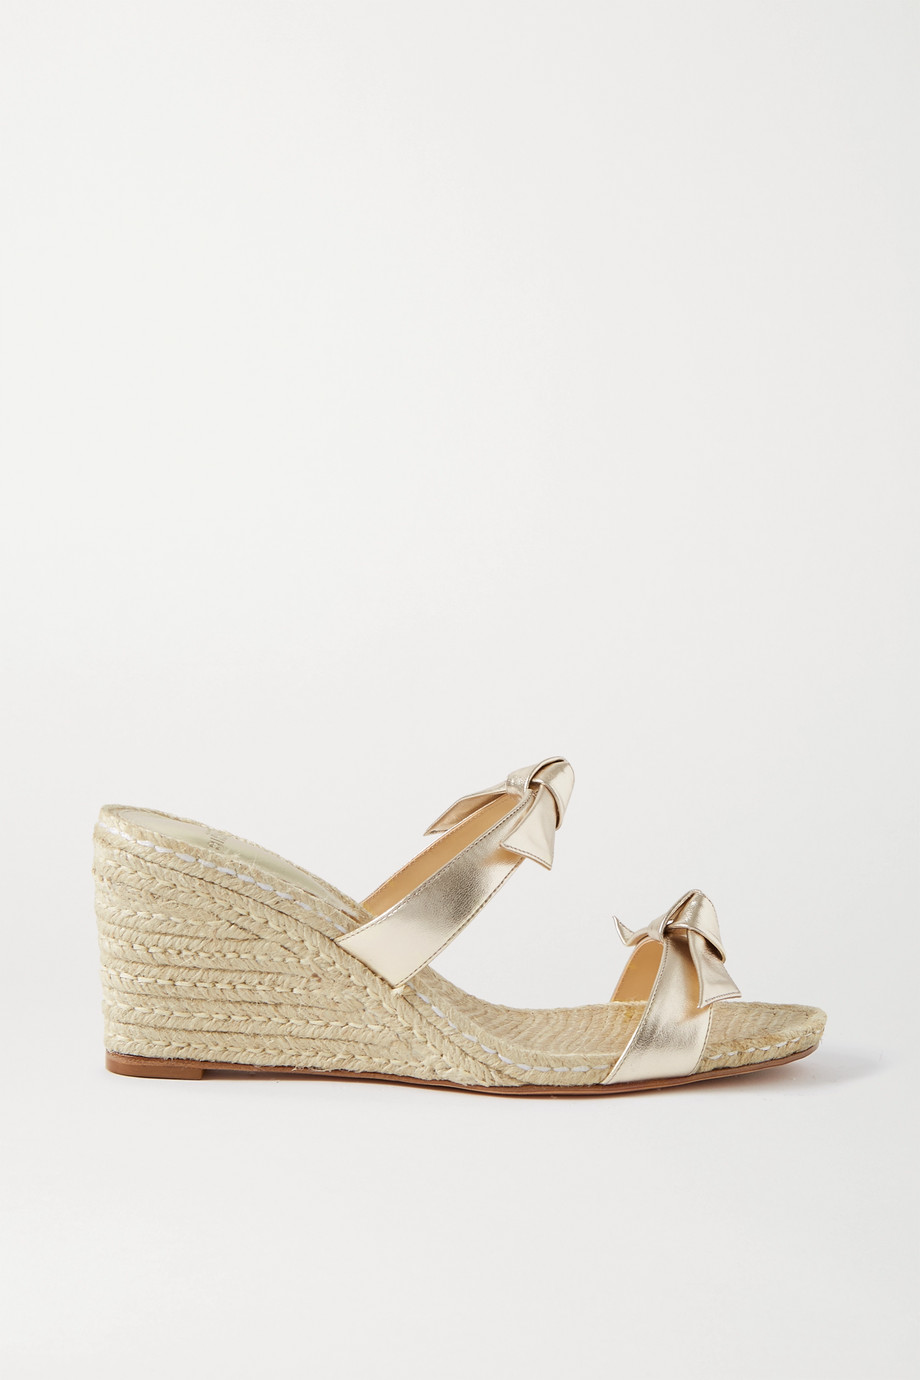 Alexandre Birman Clarita bow-embellished metallic leather espadrilles